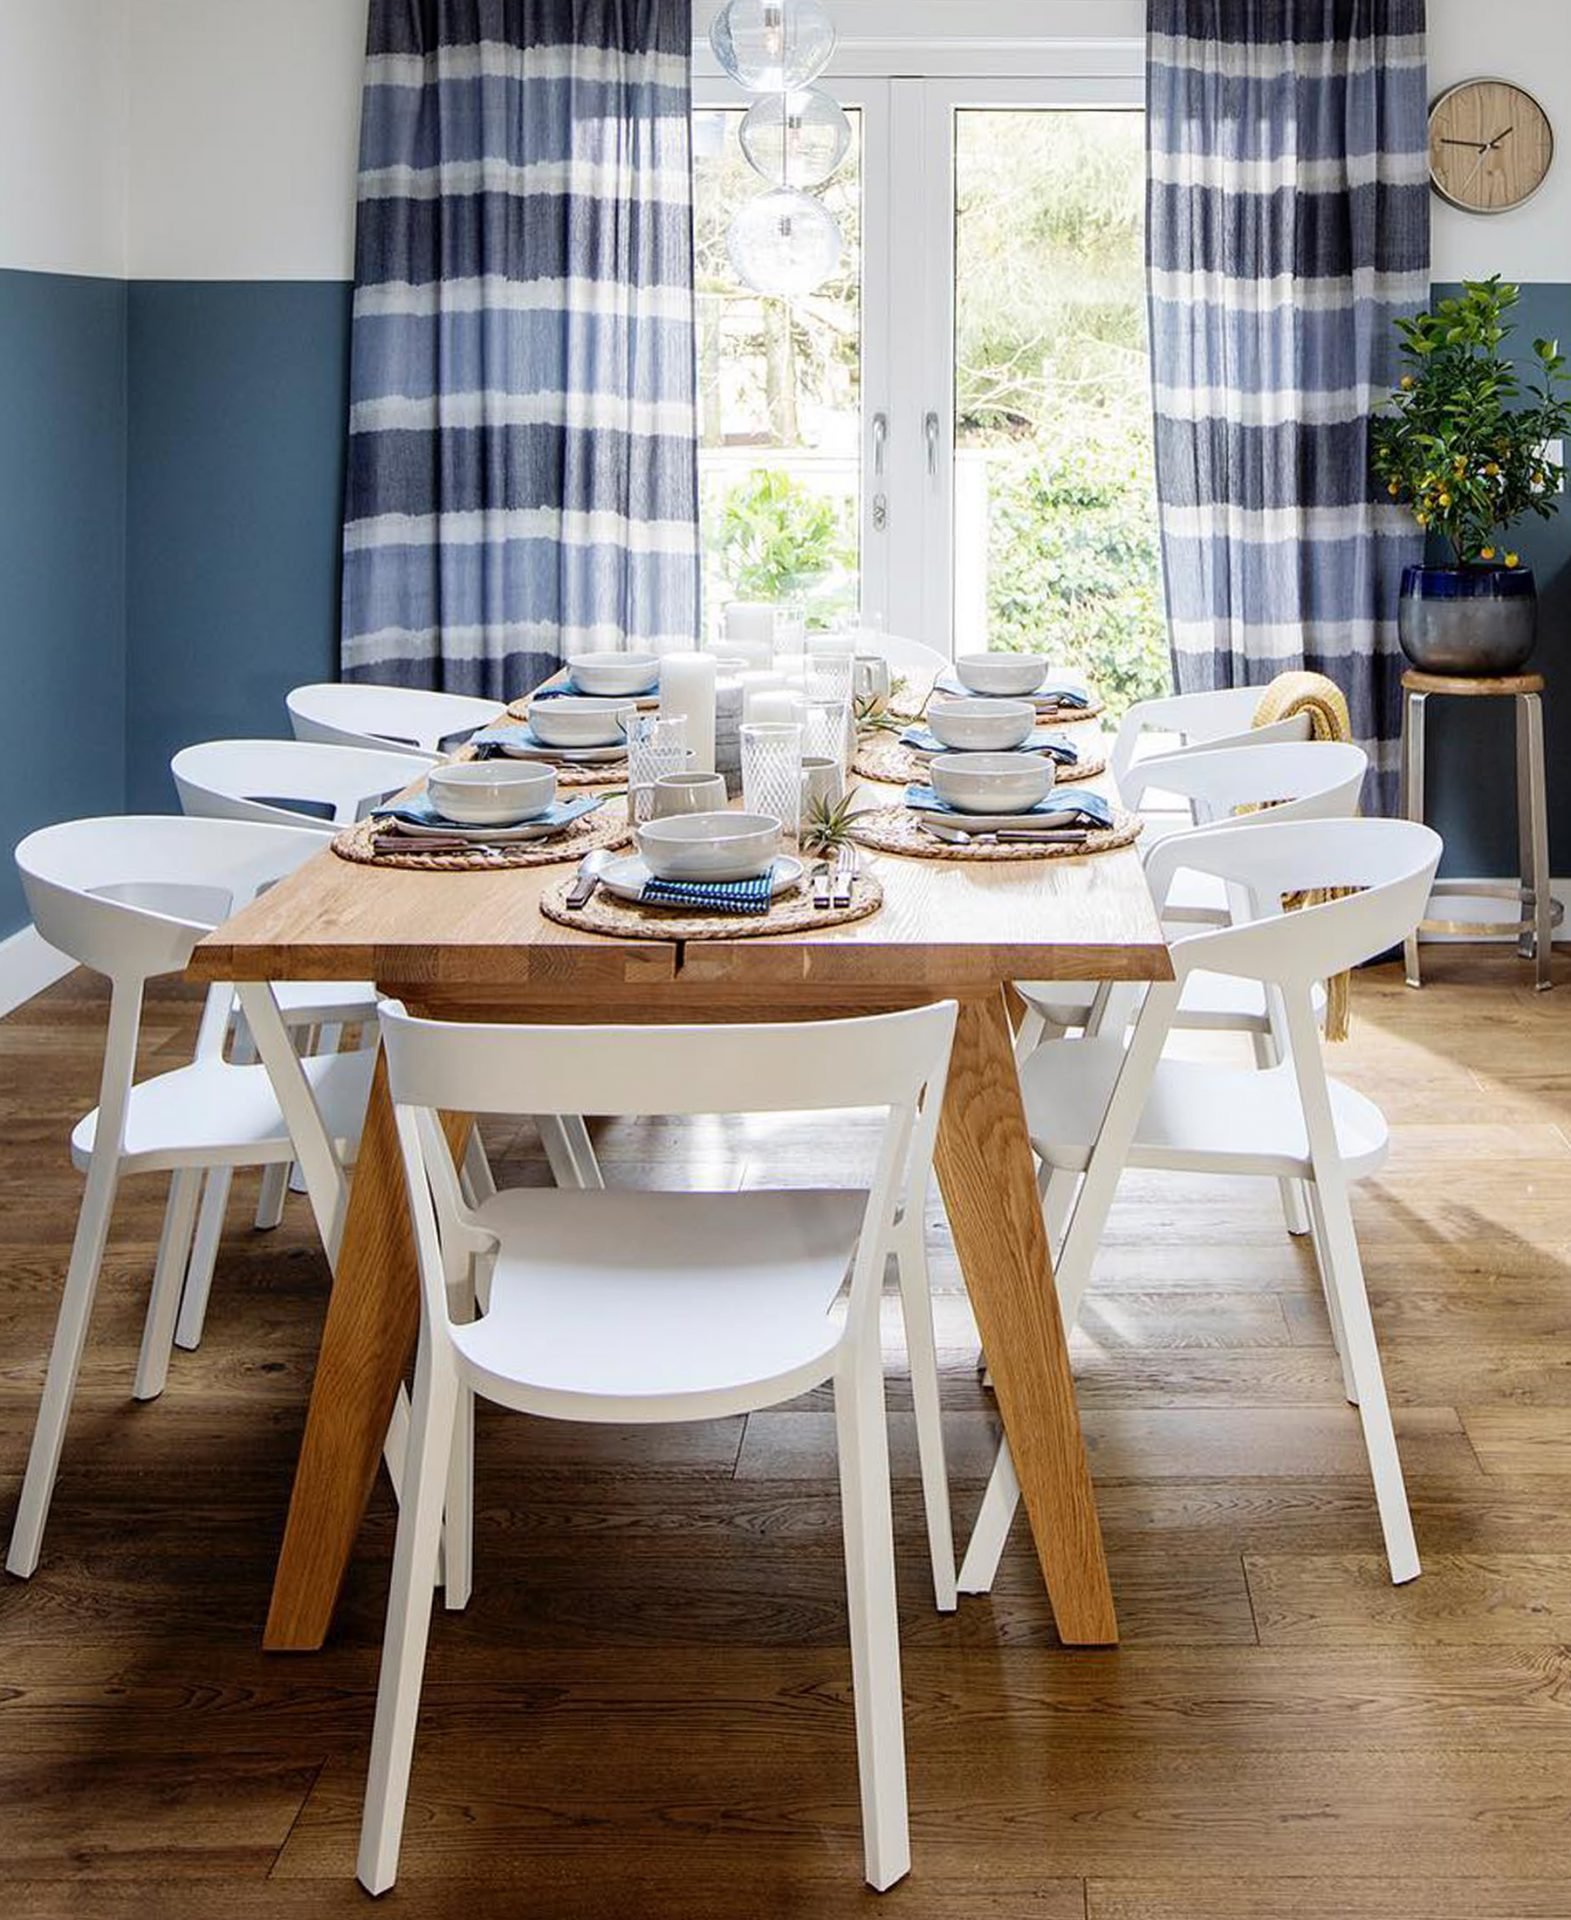 Love It Or List It featured this dining room with an Article Madera table and white chairs.